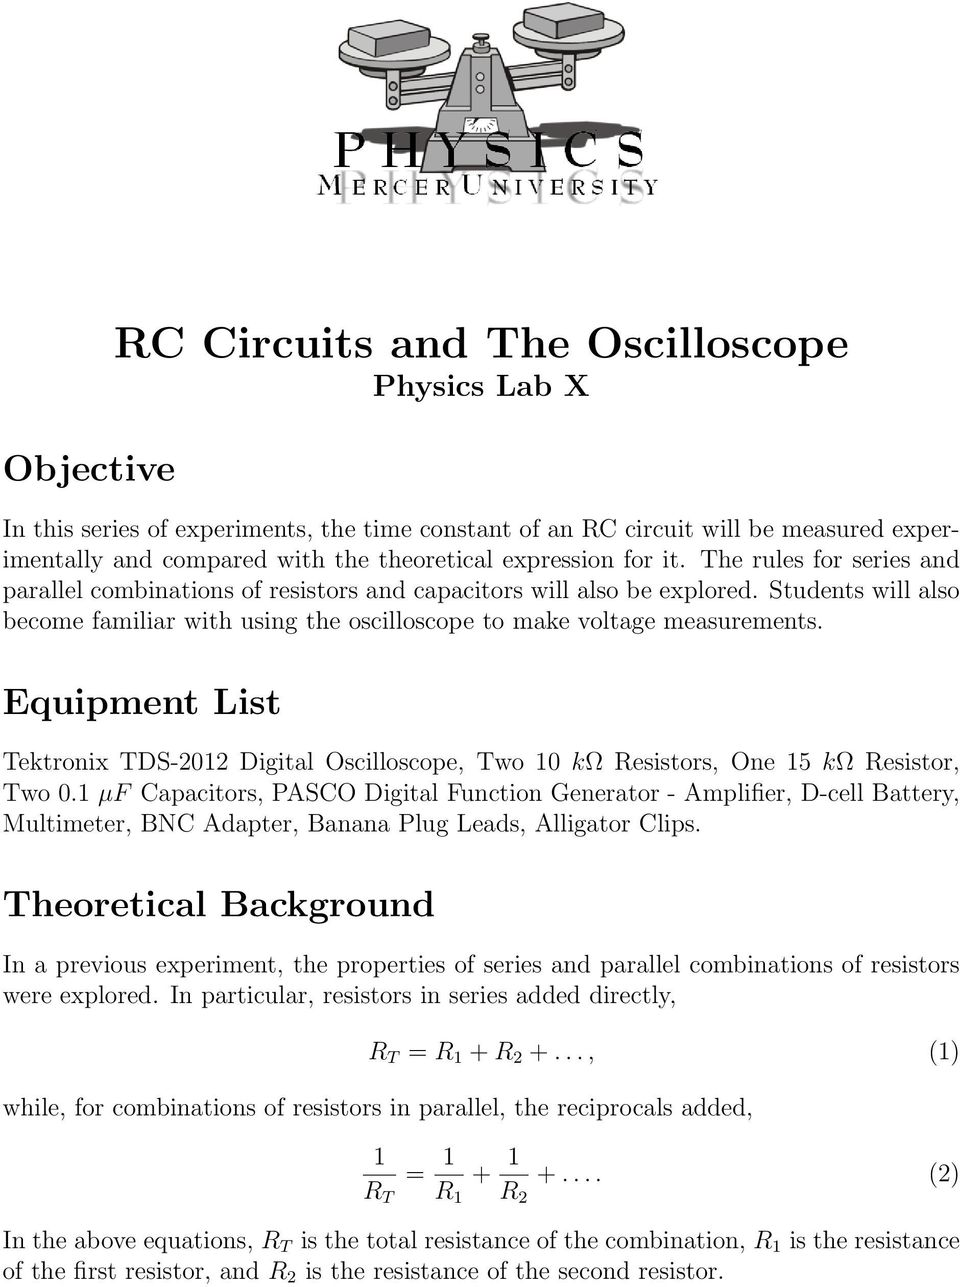 Rc Circuits And The Oscilloscope Physics Lab X Pdf Series Or Rl Circuit Into An Equivalent Parallel Transcription